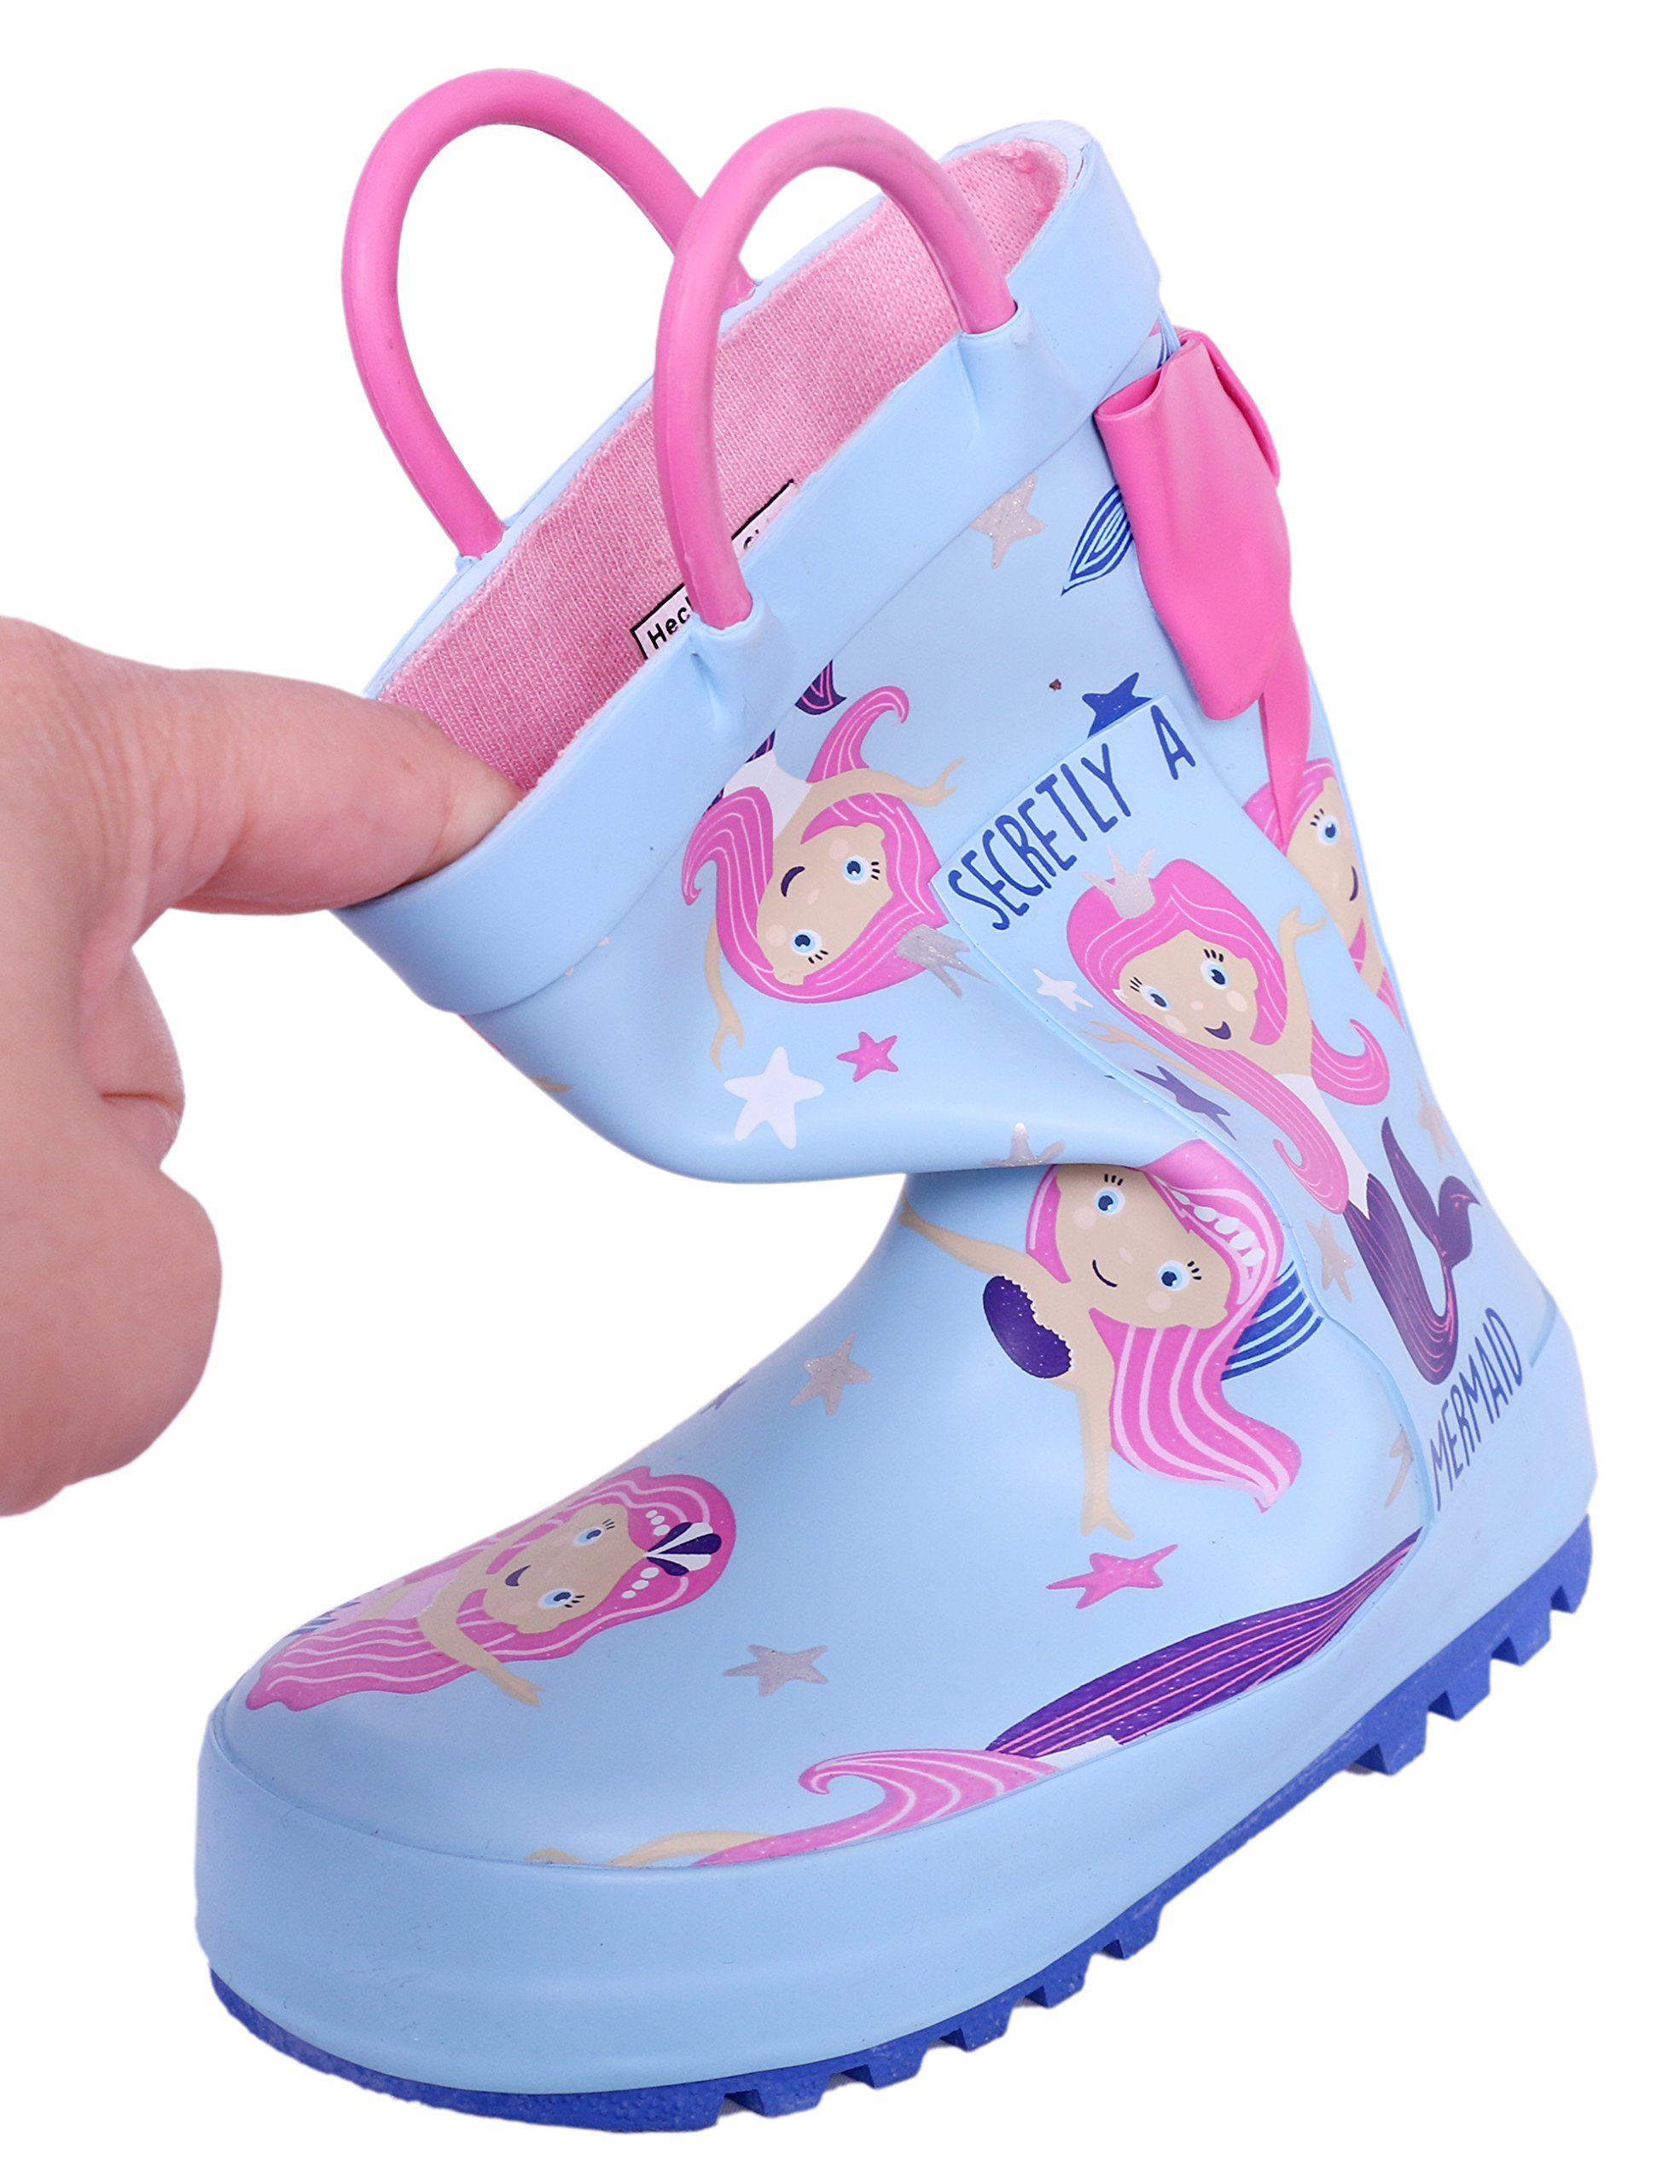 SHOFORT Girls' Rain Boots Rubber Handles Toddler, Size 9 by SHOFORT (Image #4)